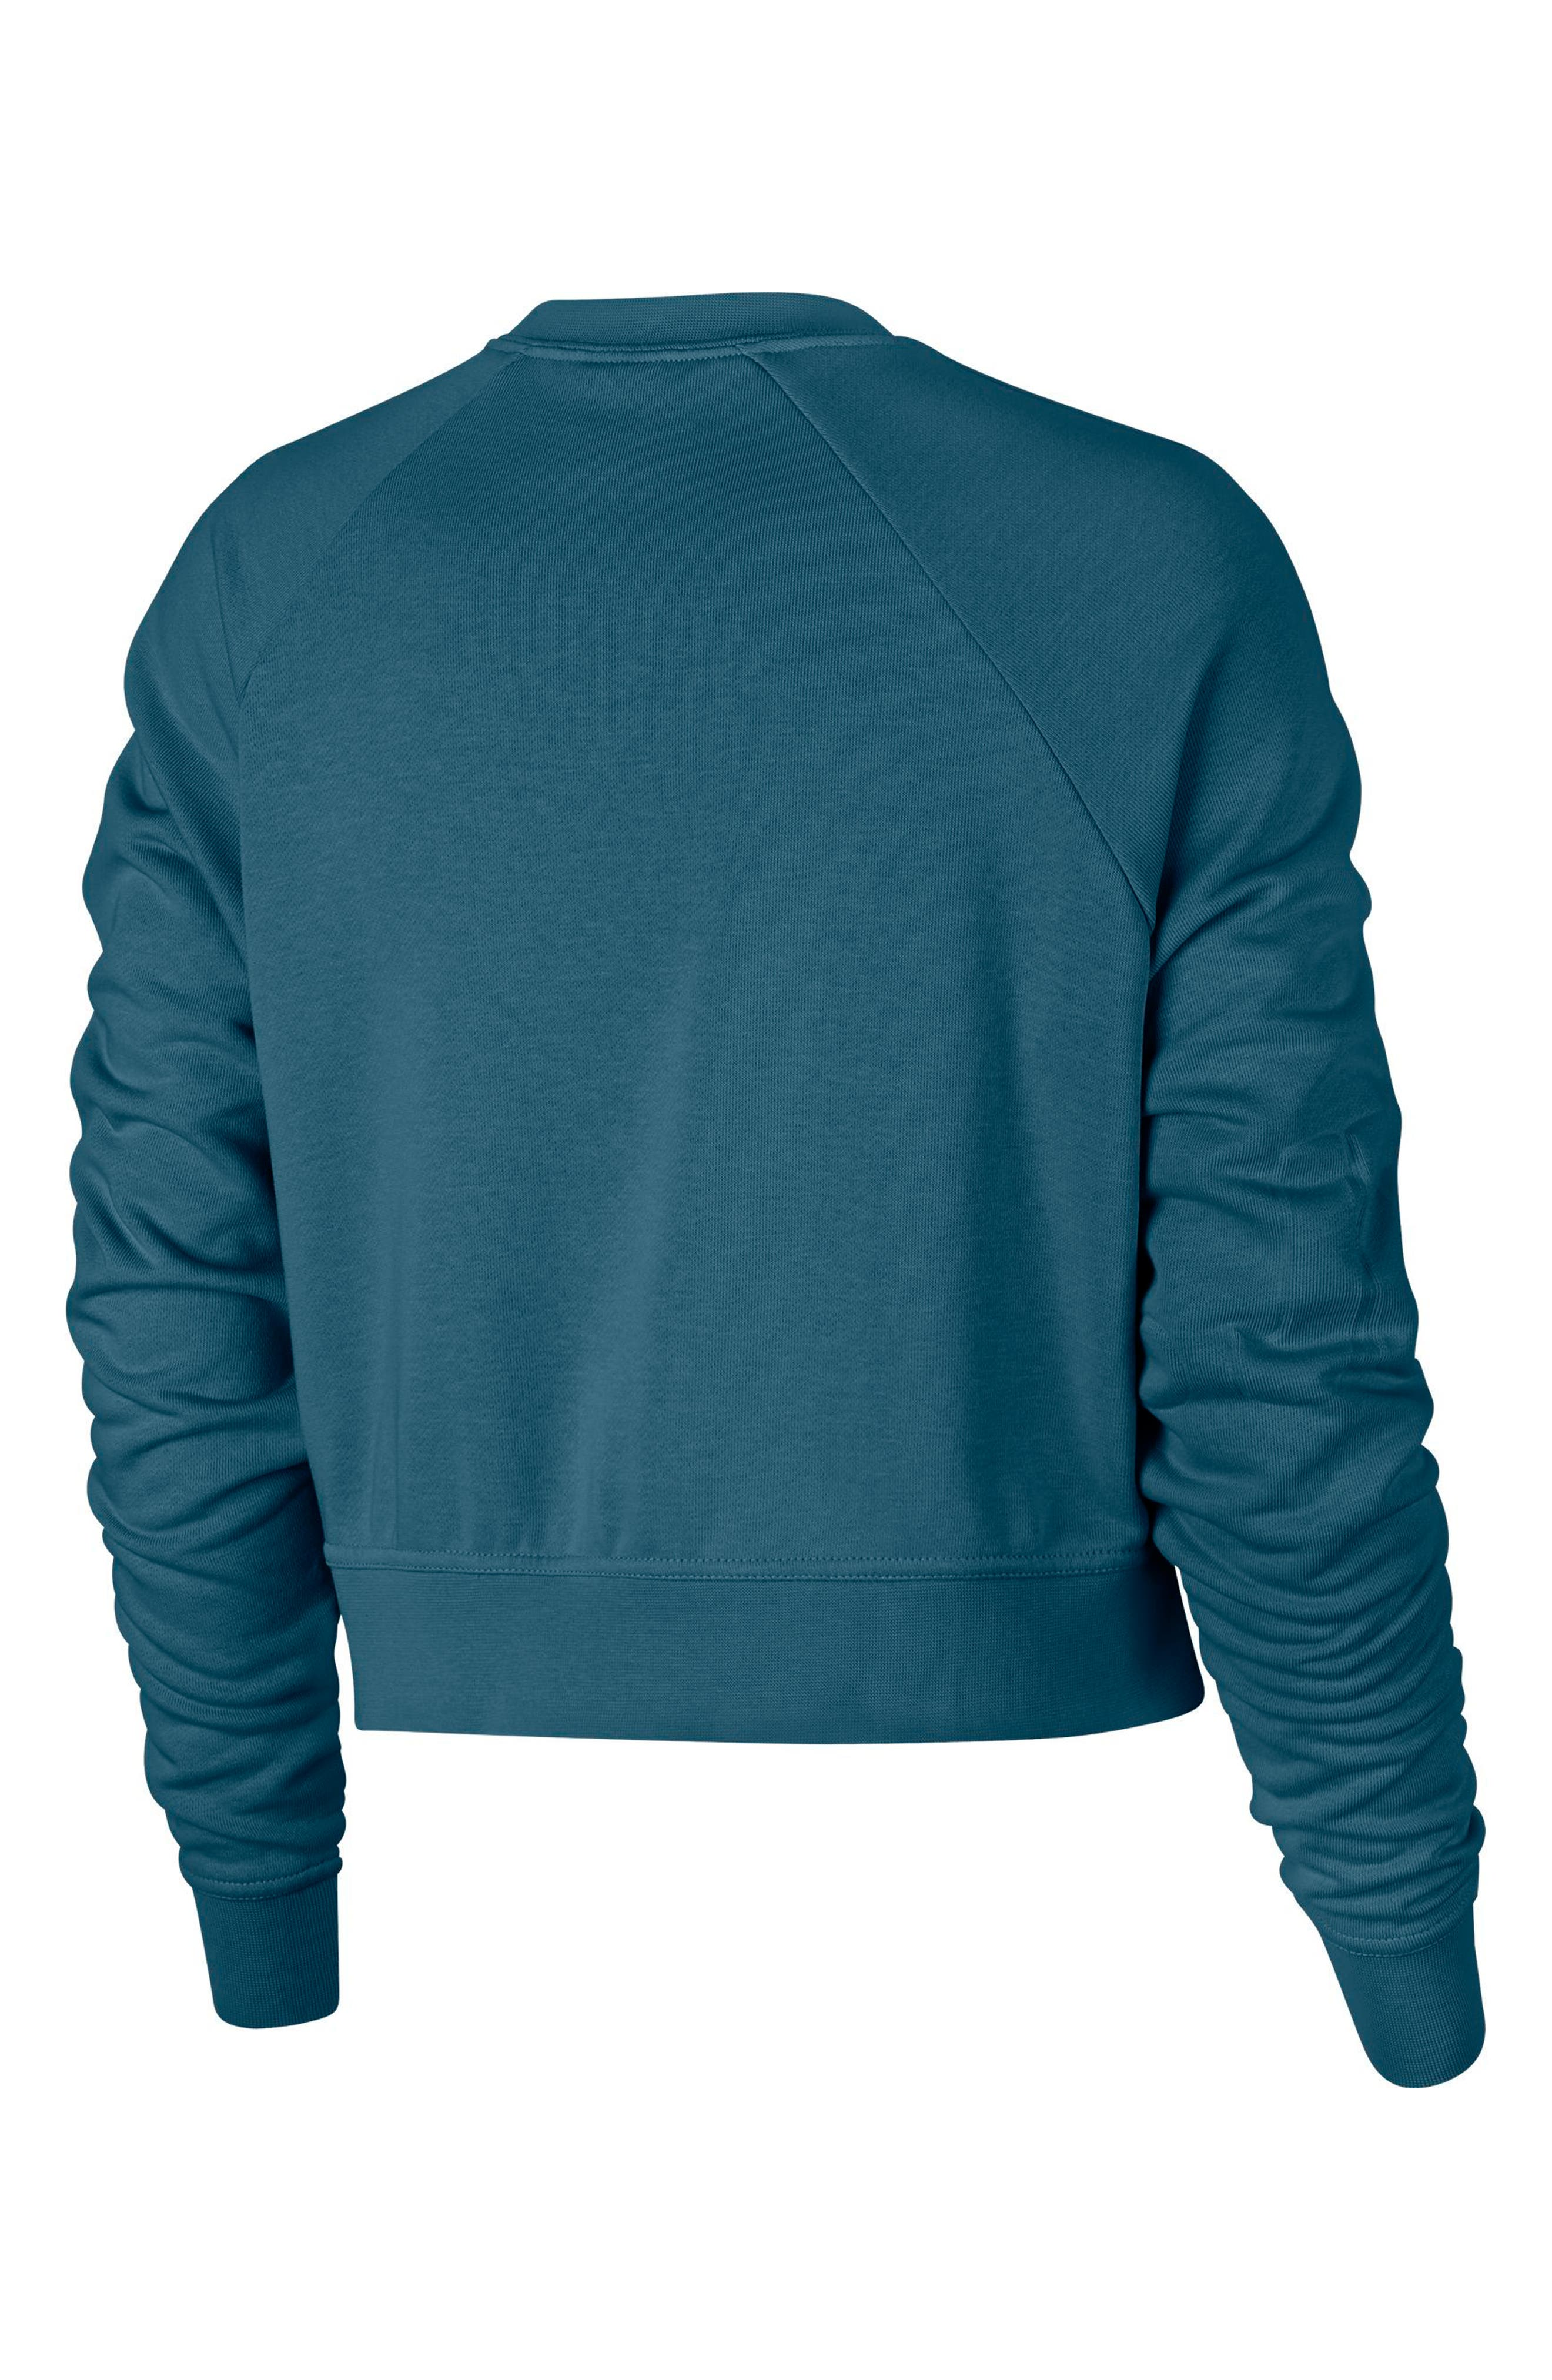 Long Sleeve Crop Training Top,                             Alternate thumbnail 27, color,